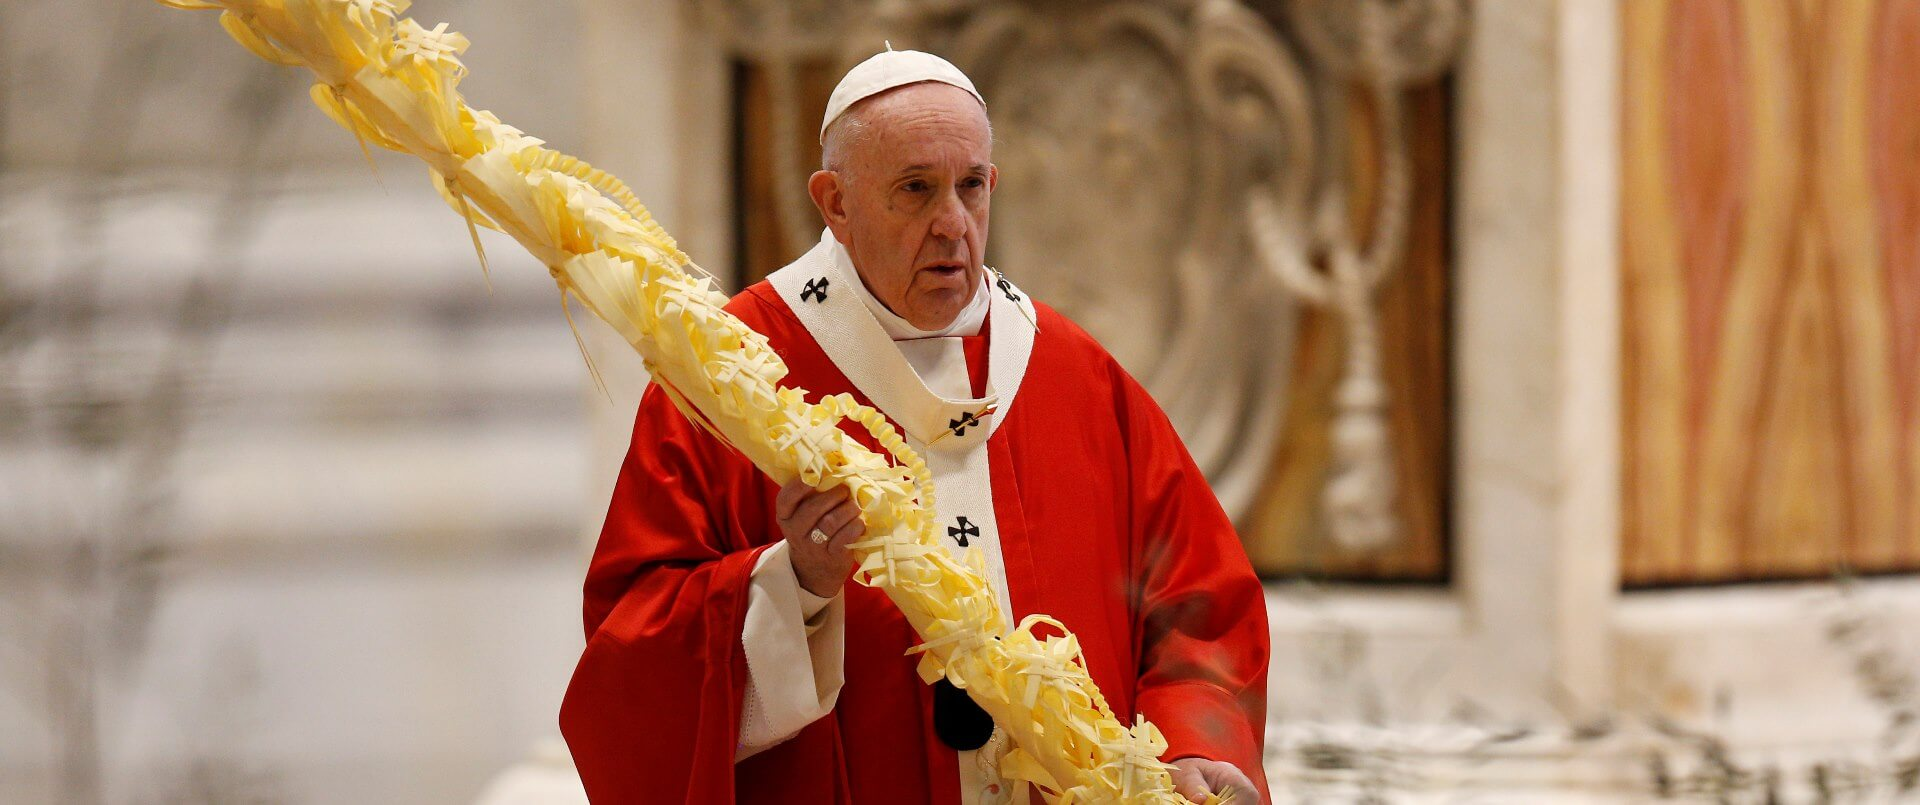 Pope on Palm Sunday: Life, measured by love, is meant to serve others   Archdiocese of Baltimore